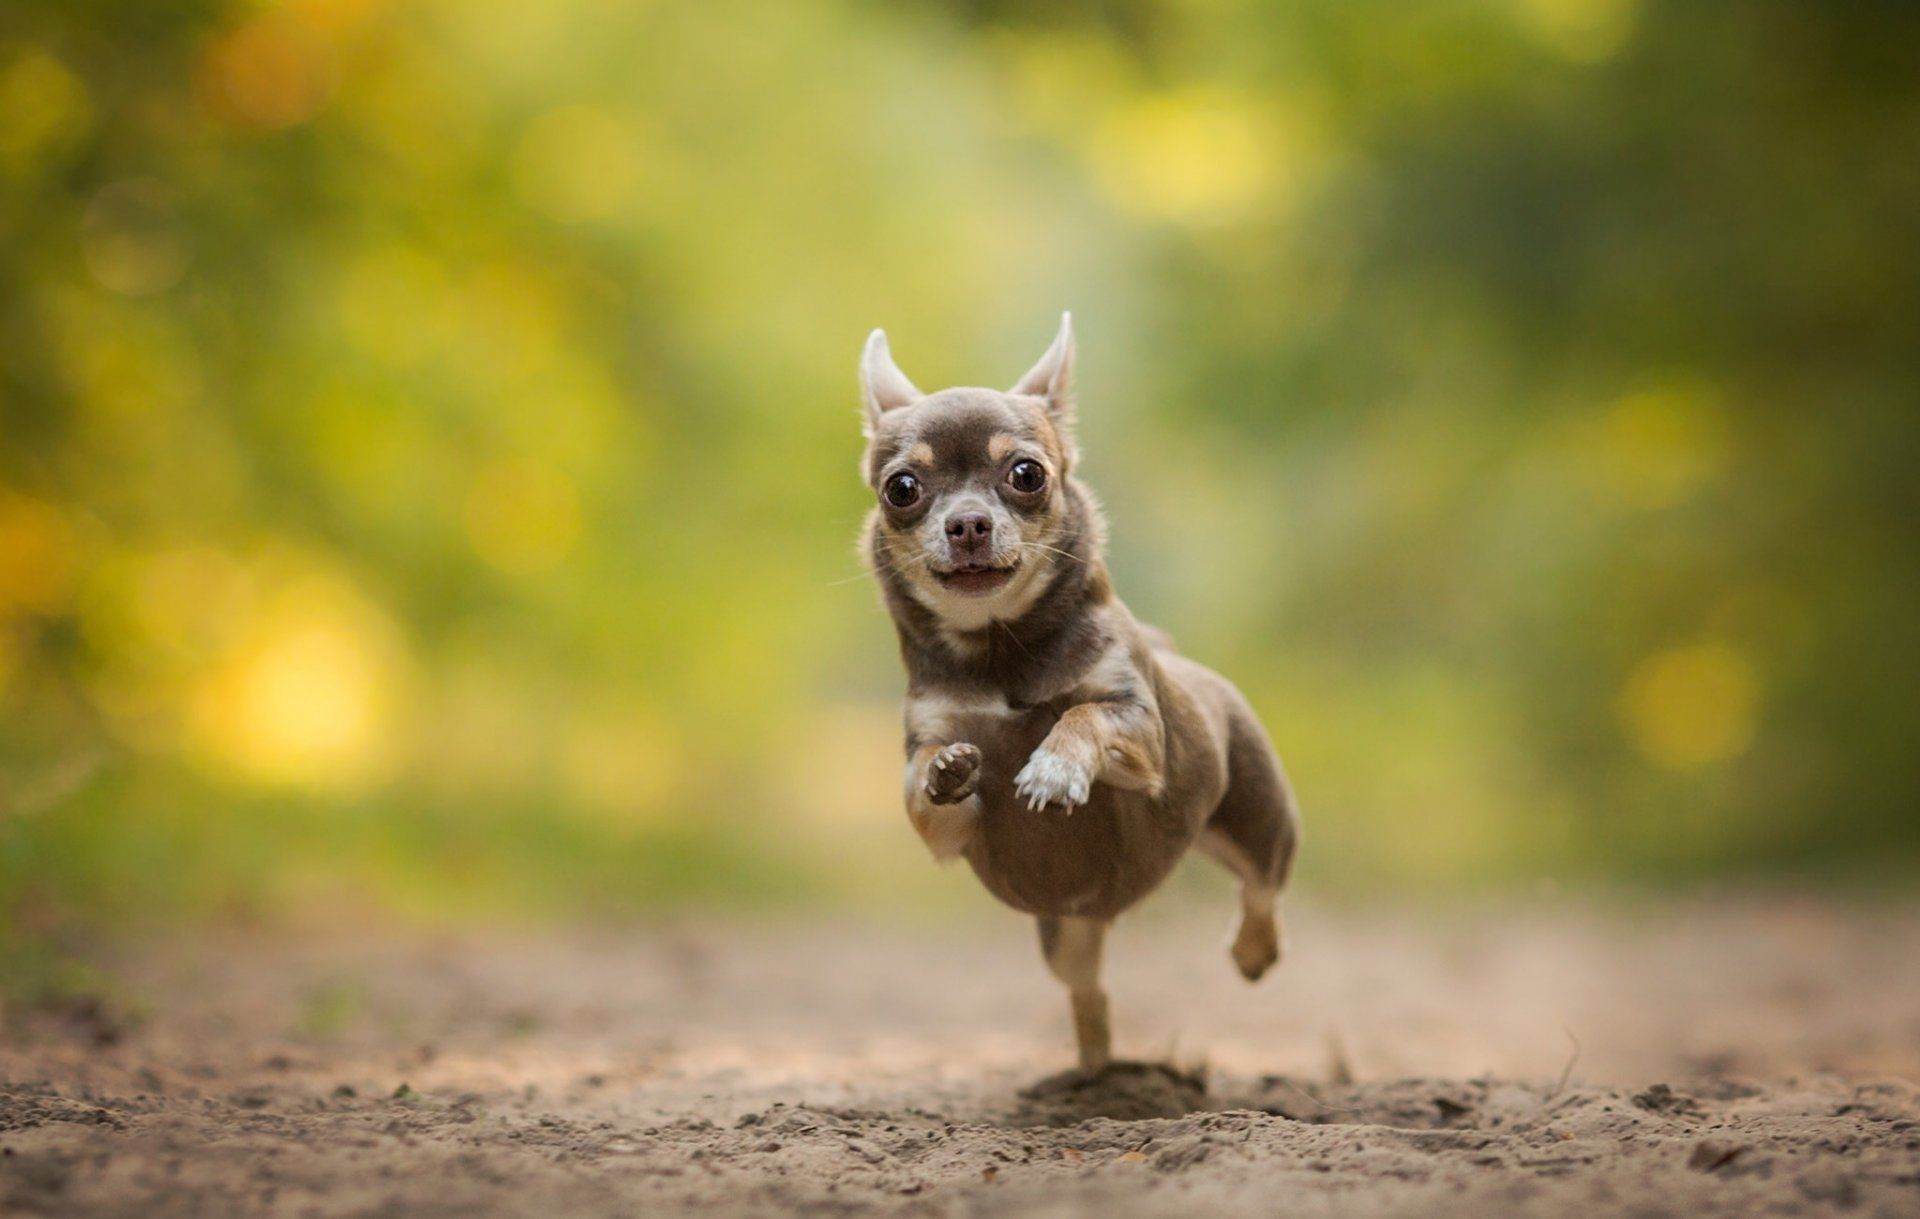 Free Chihuahua Wallpapers for Desktop